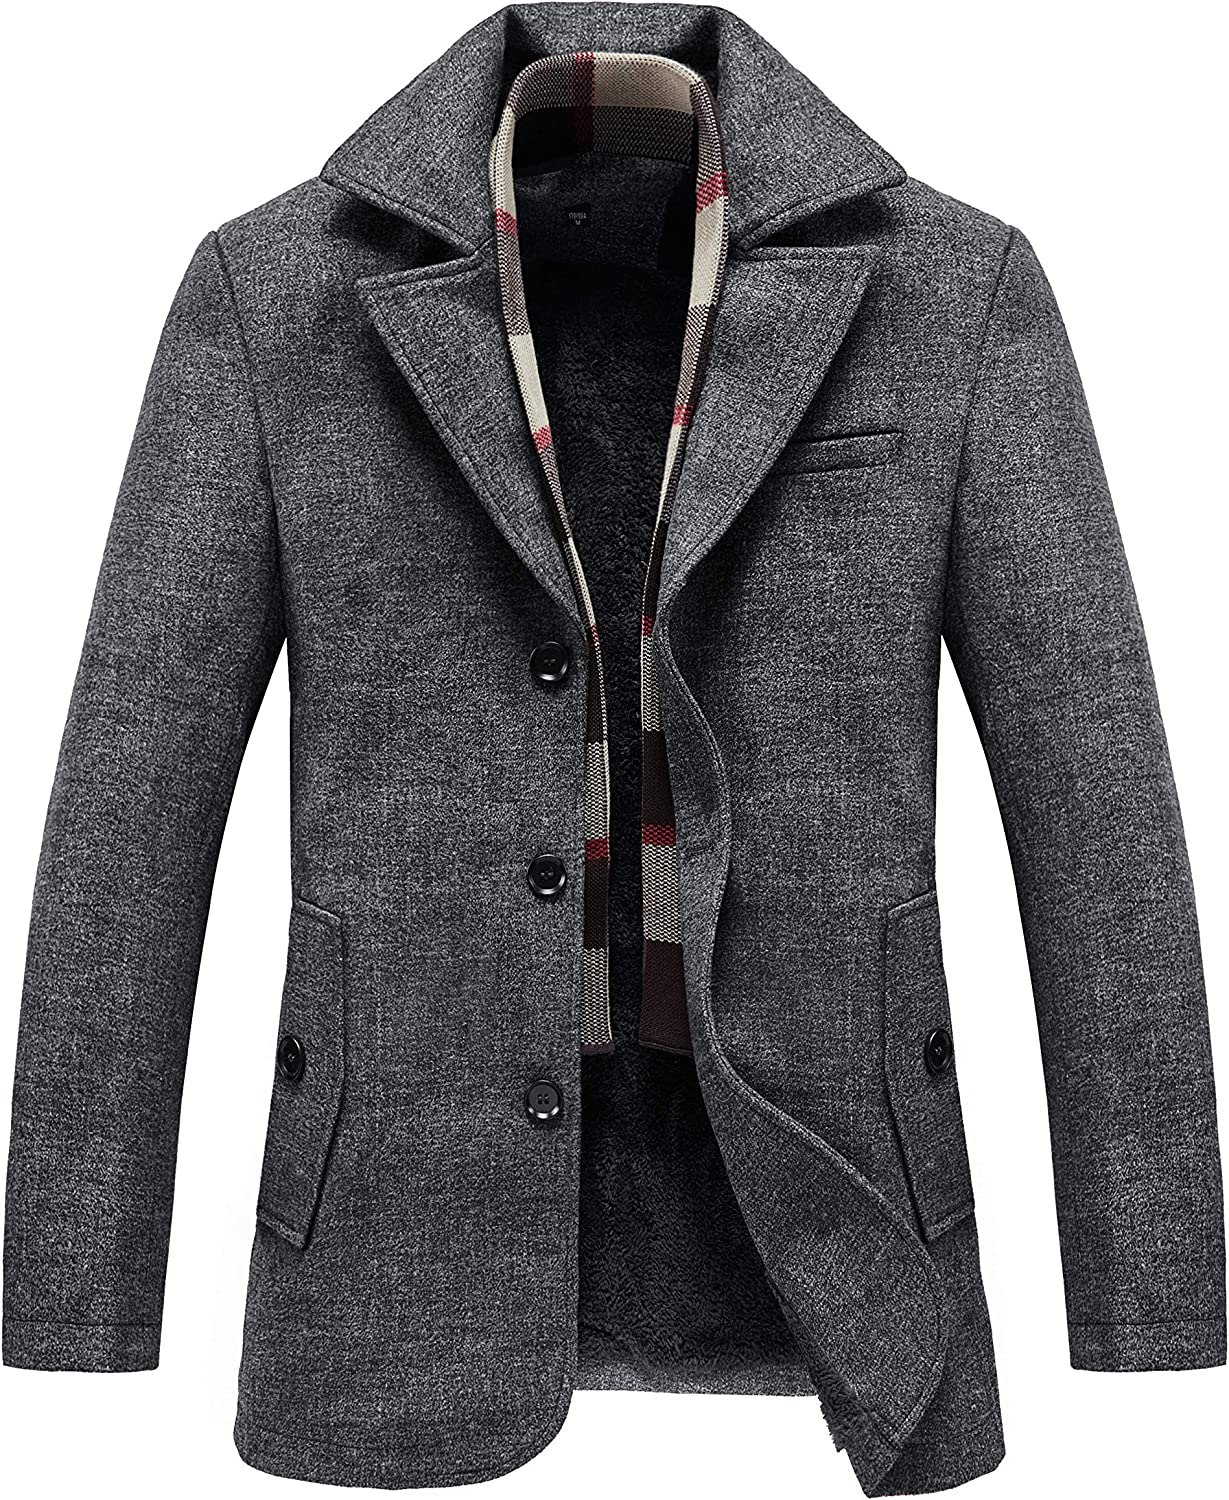 RongYue Men's Wool Blend Pea Coat Fleece Lined Jacket with Removable Soft Wool Plaid Scarf